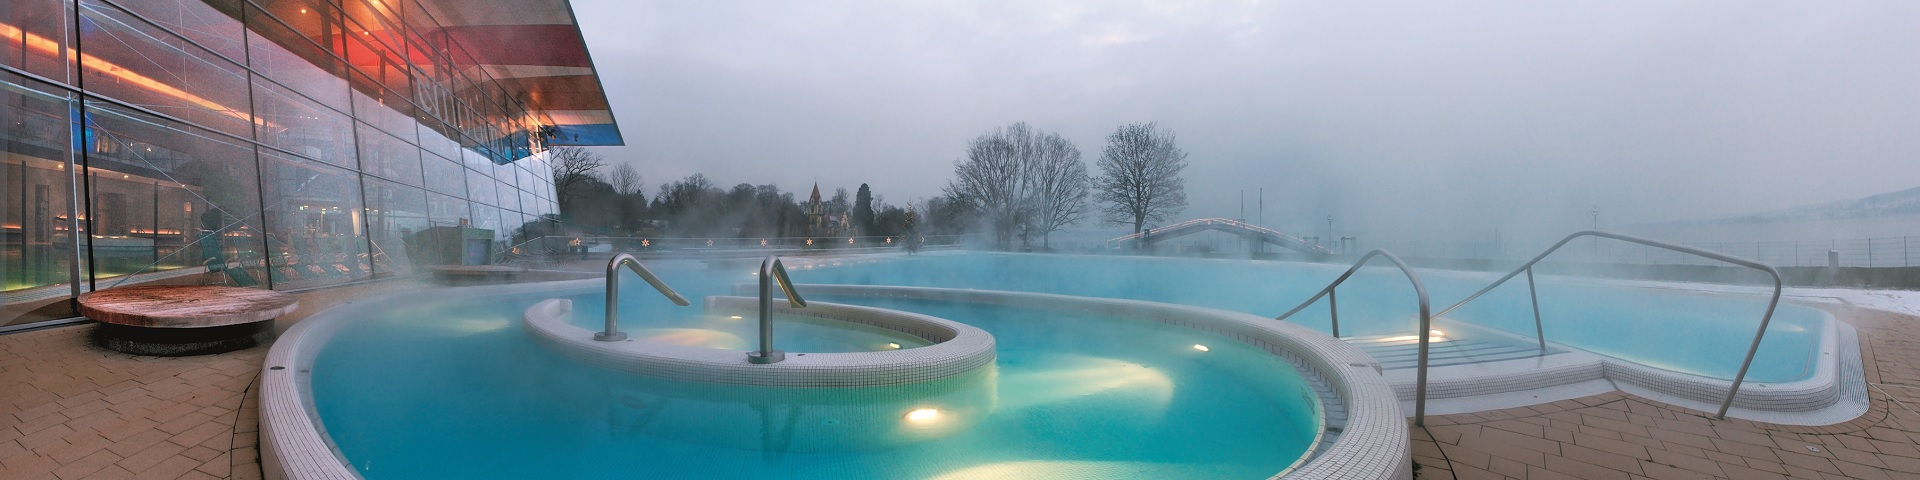 Thermal Baths in Konstanz